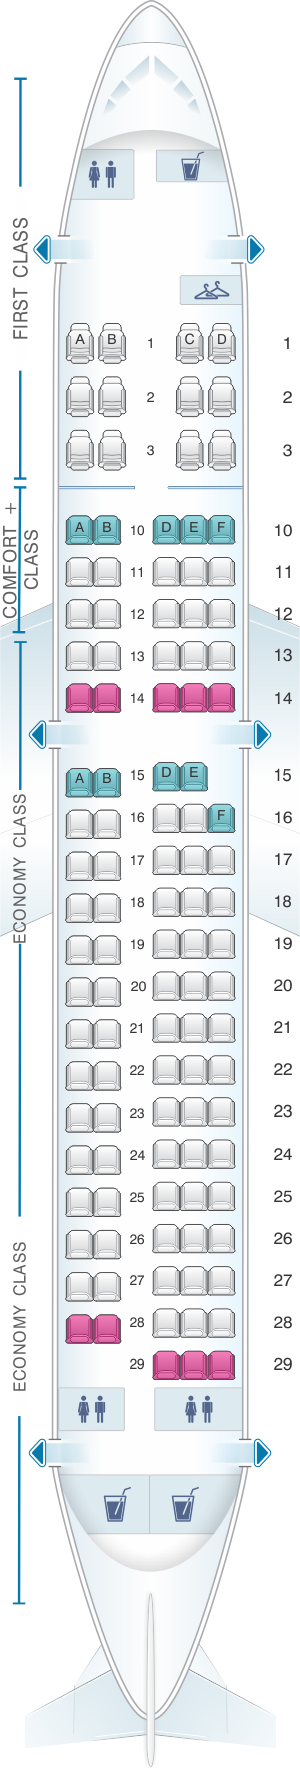 Seat map for Delta Airlines Airbus A220 100